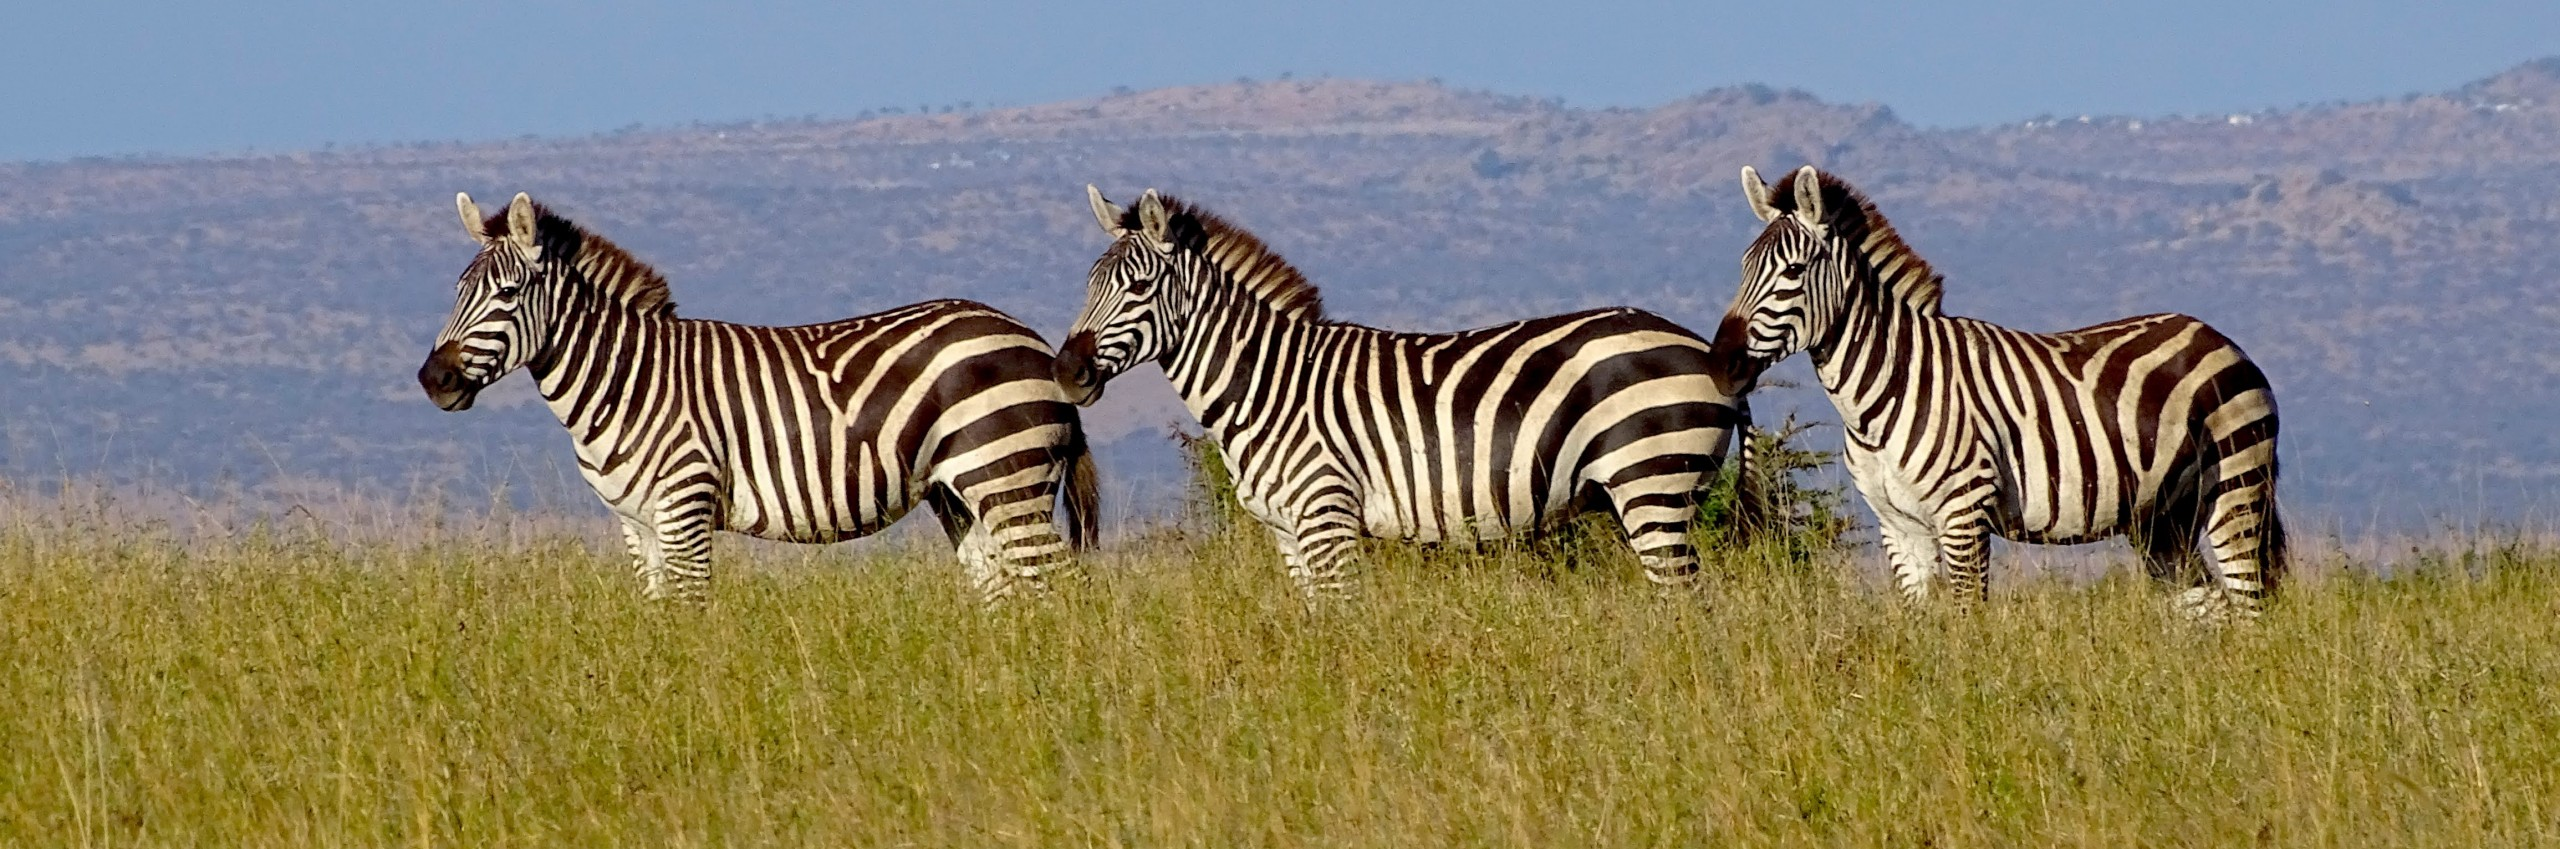 3 zebras in the wild.